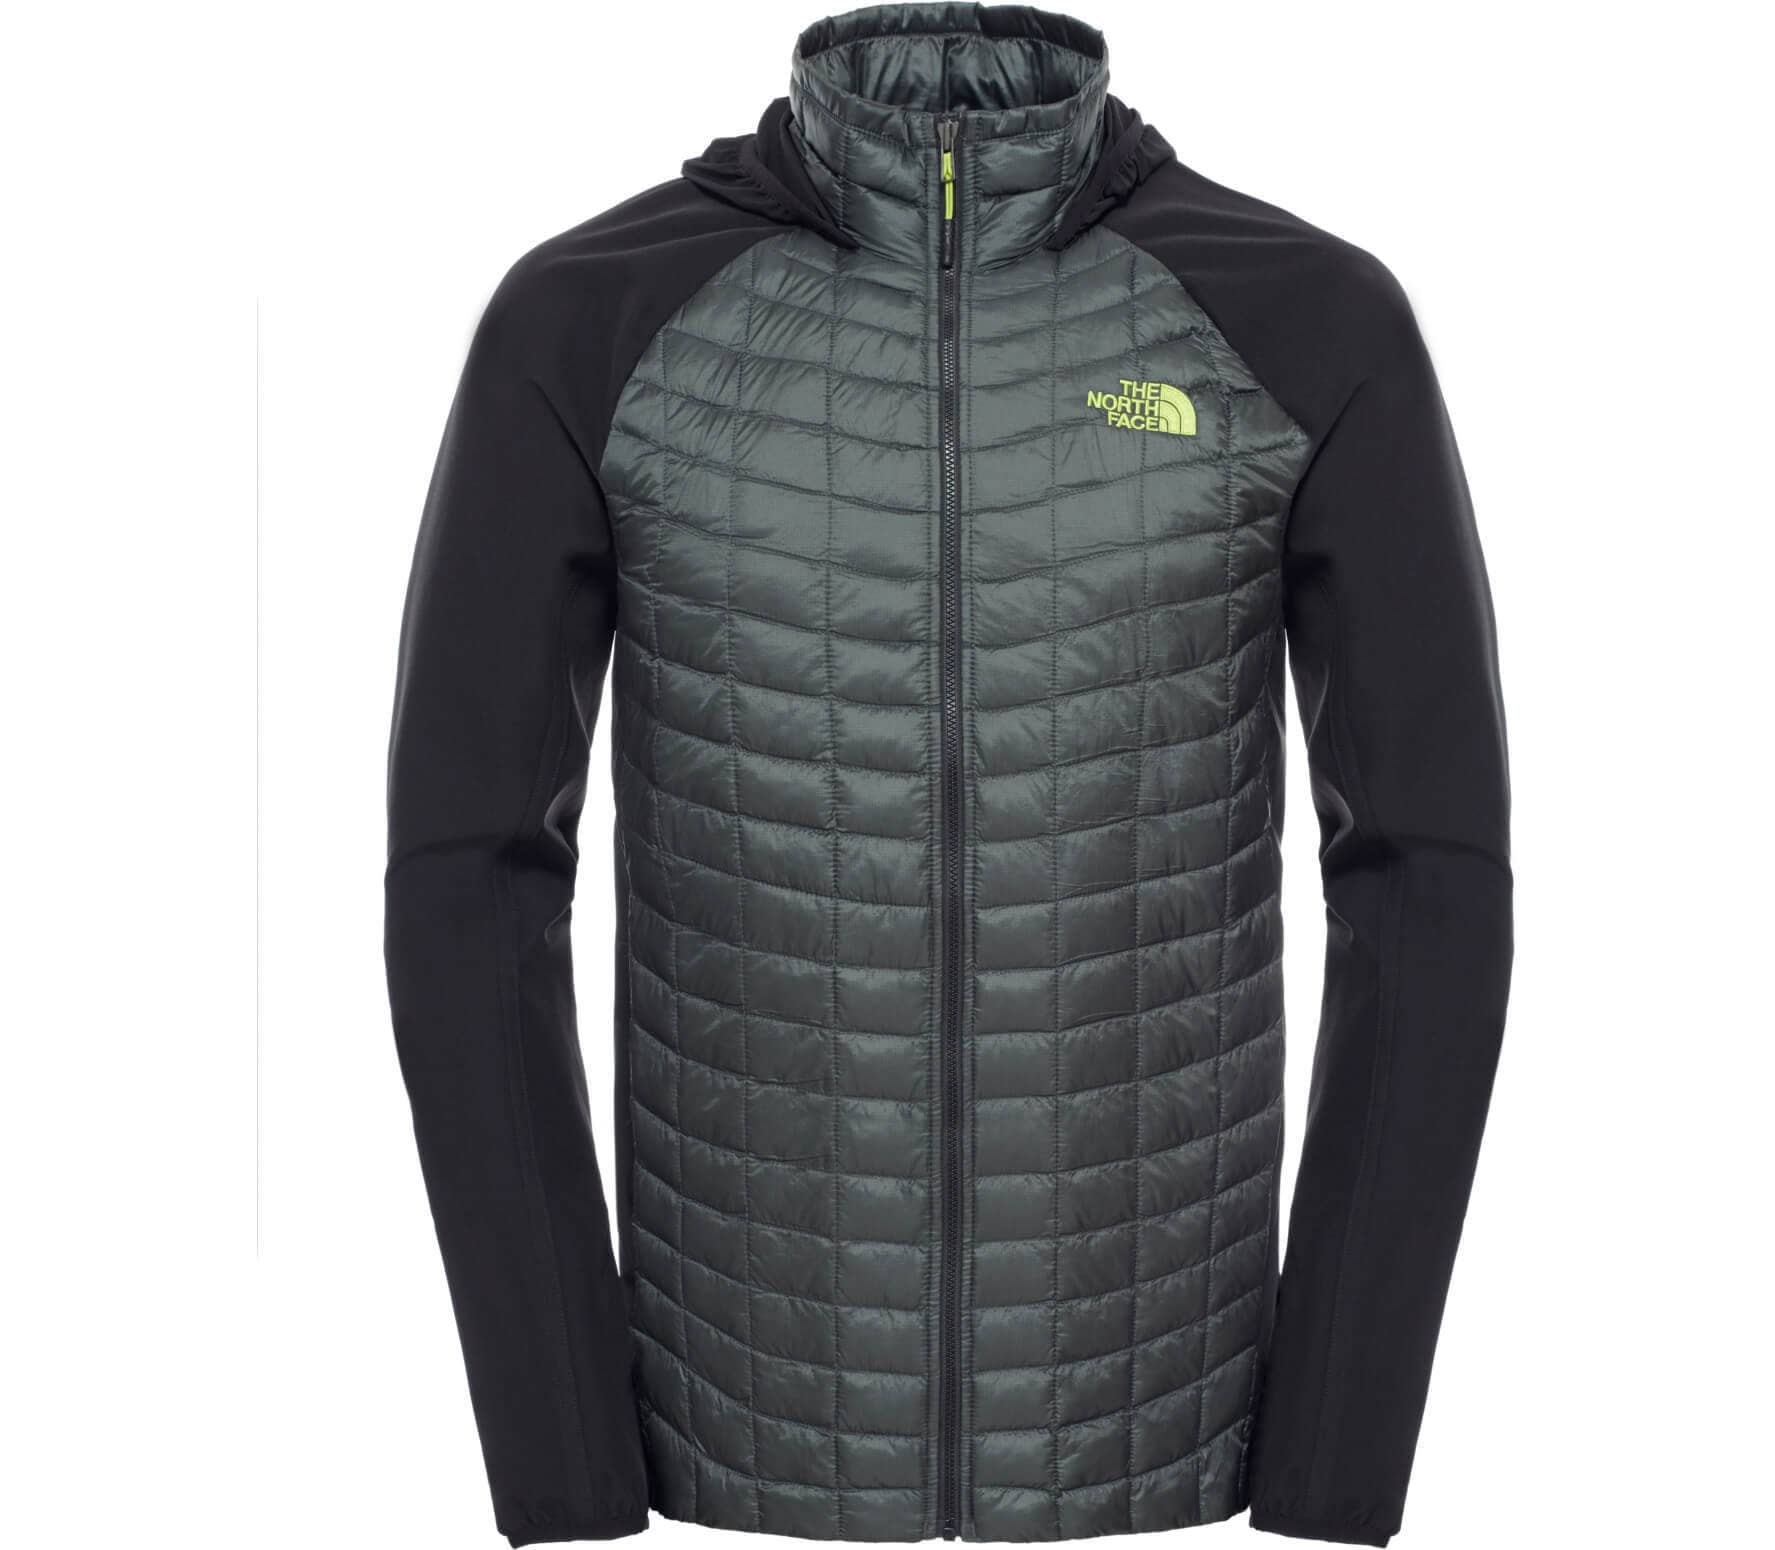 622f3f151b51 The North Face ThermoBall Hybrid hoodie men's insulating jacket Men ...